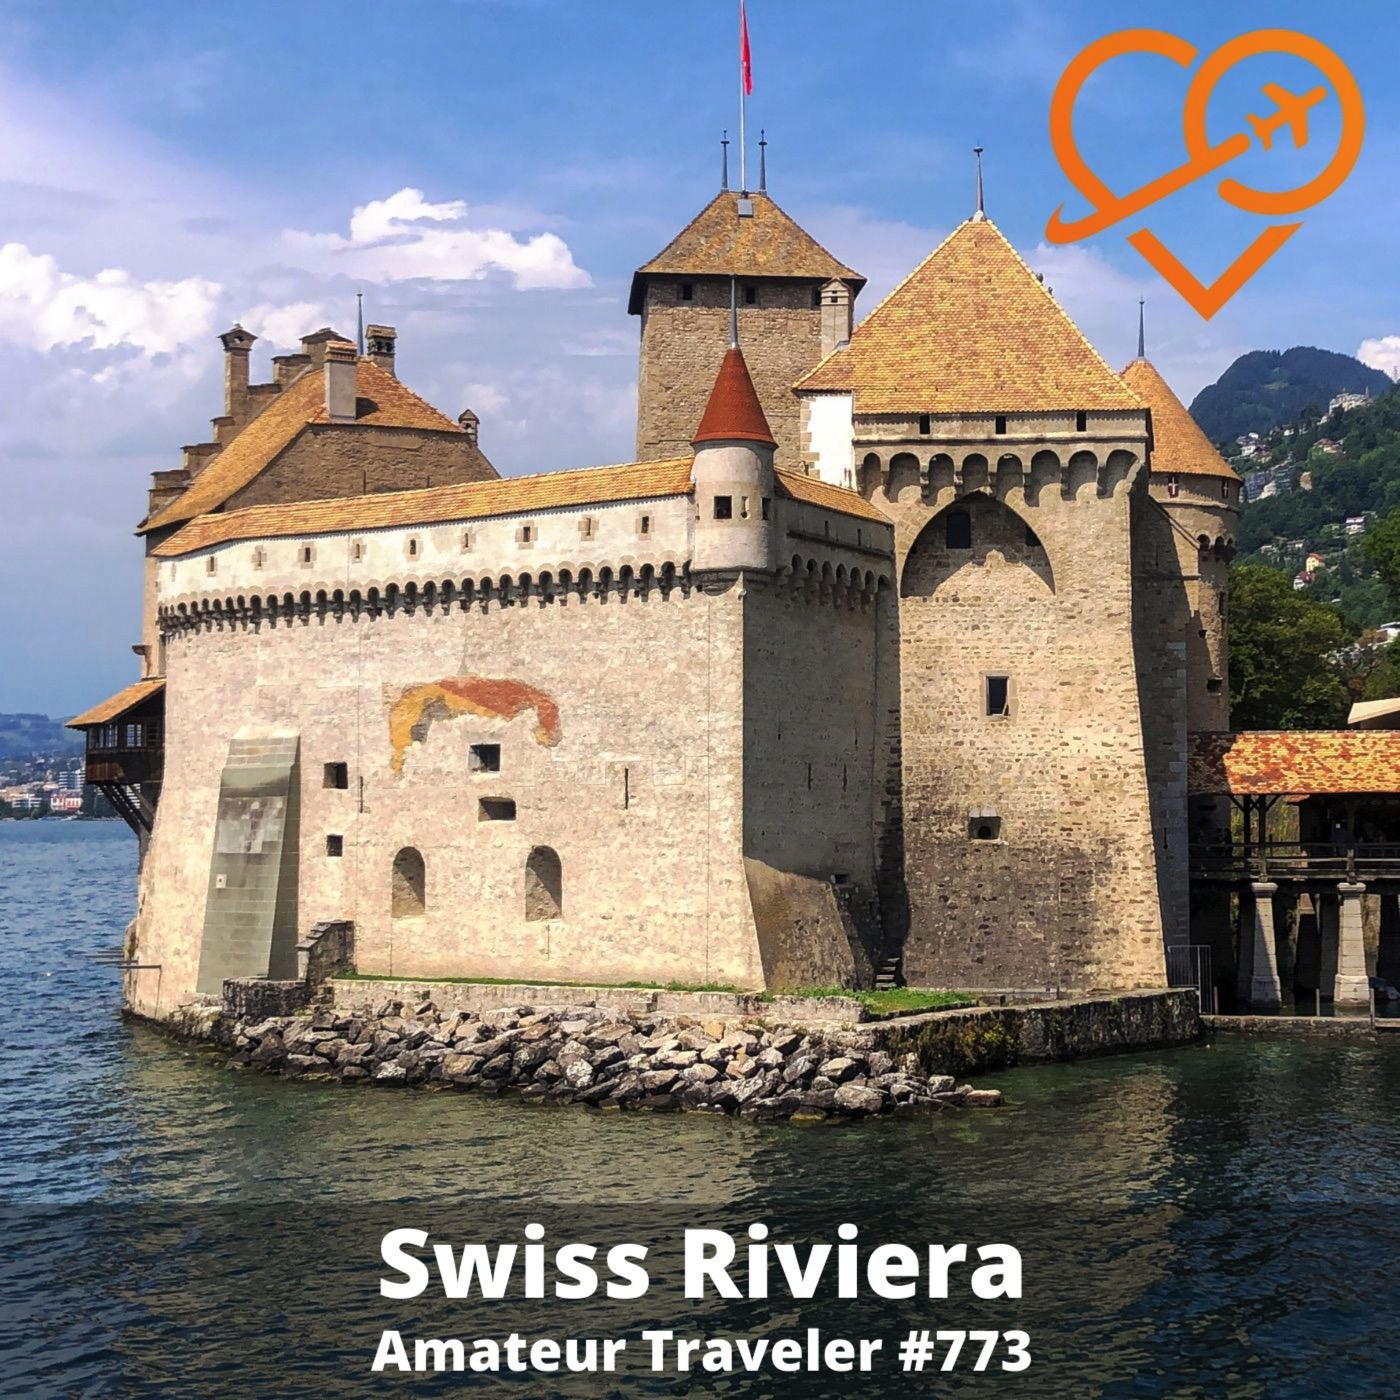 AT#773 - Travel to Montreux and the Swiss Riviera